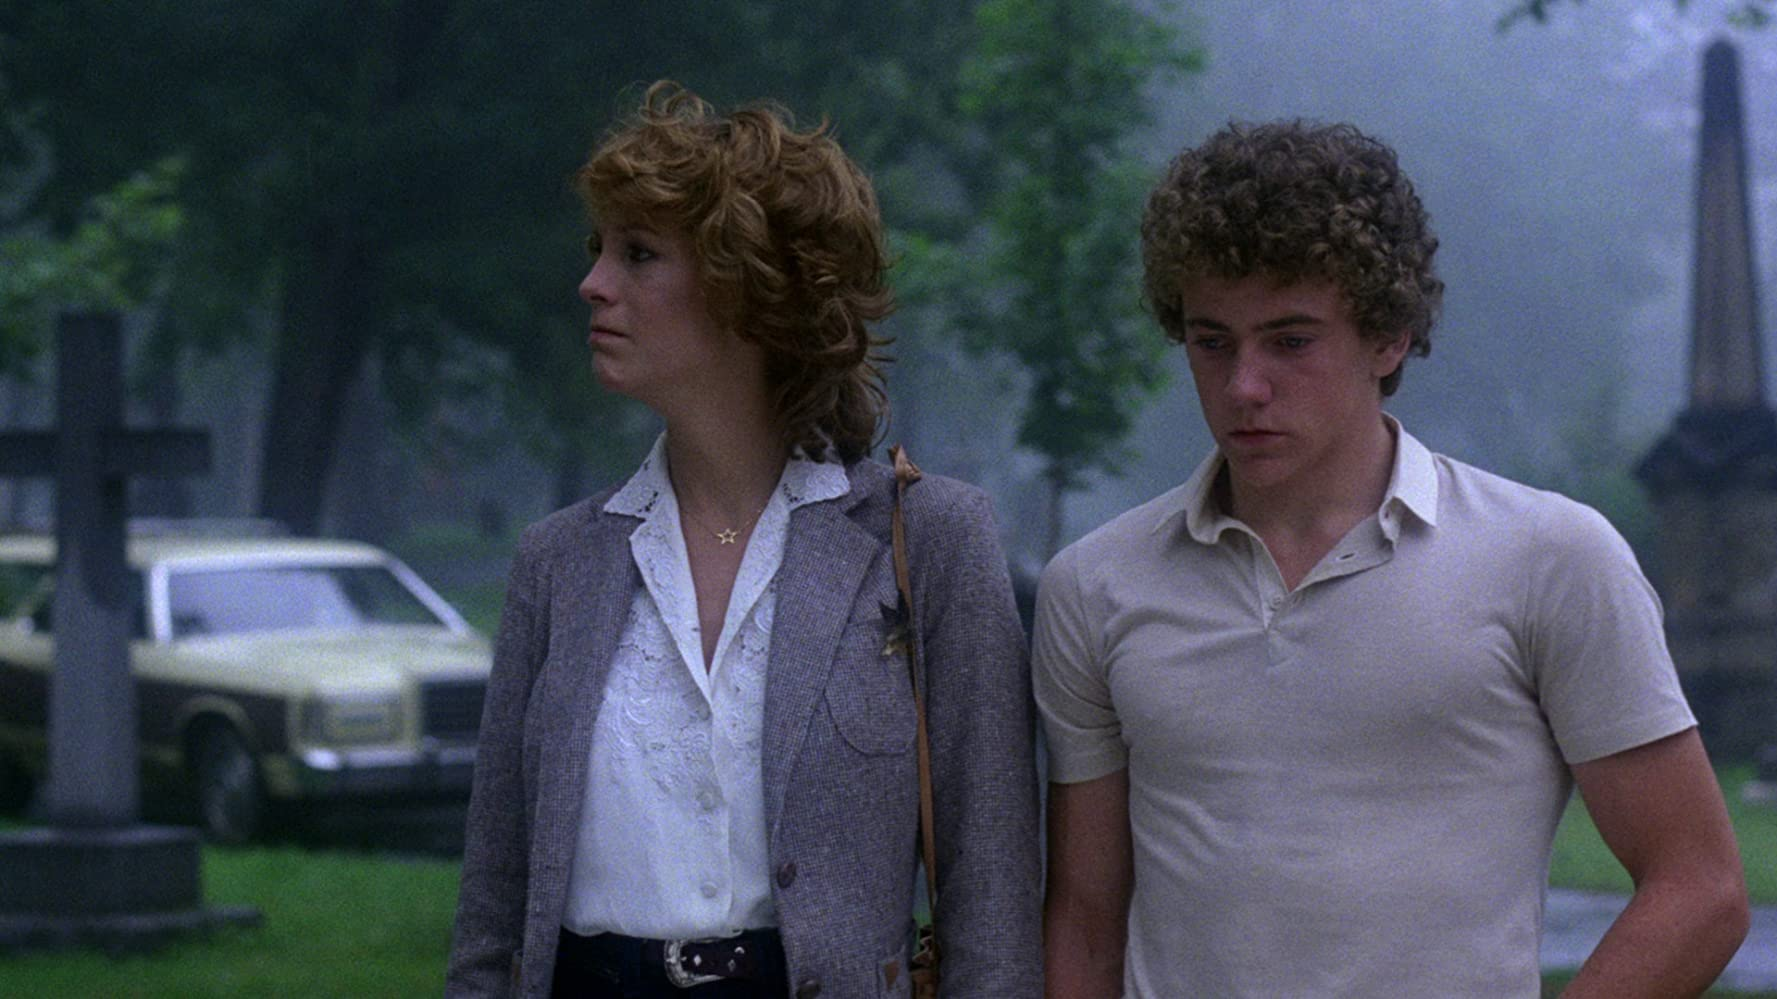 Jamie Lee Curtis and Michael Tough in Prom Night (1980)